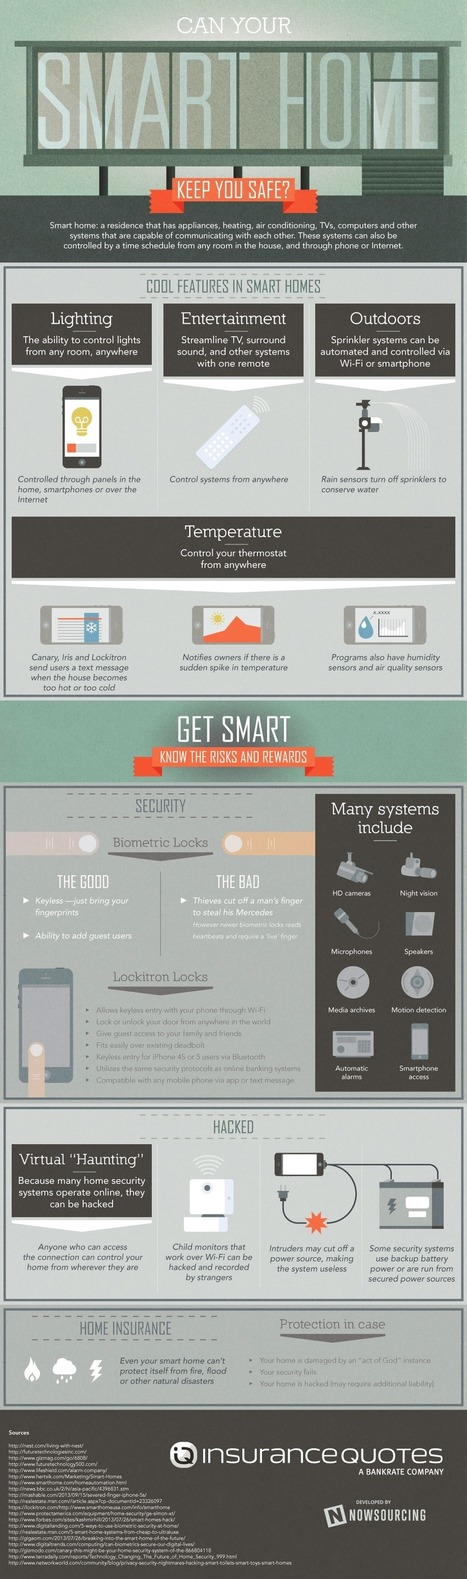 Smart Homes: Are They Safe? [Infographic]   home improvement   Scoop.it